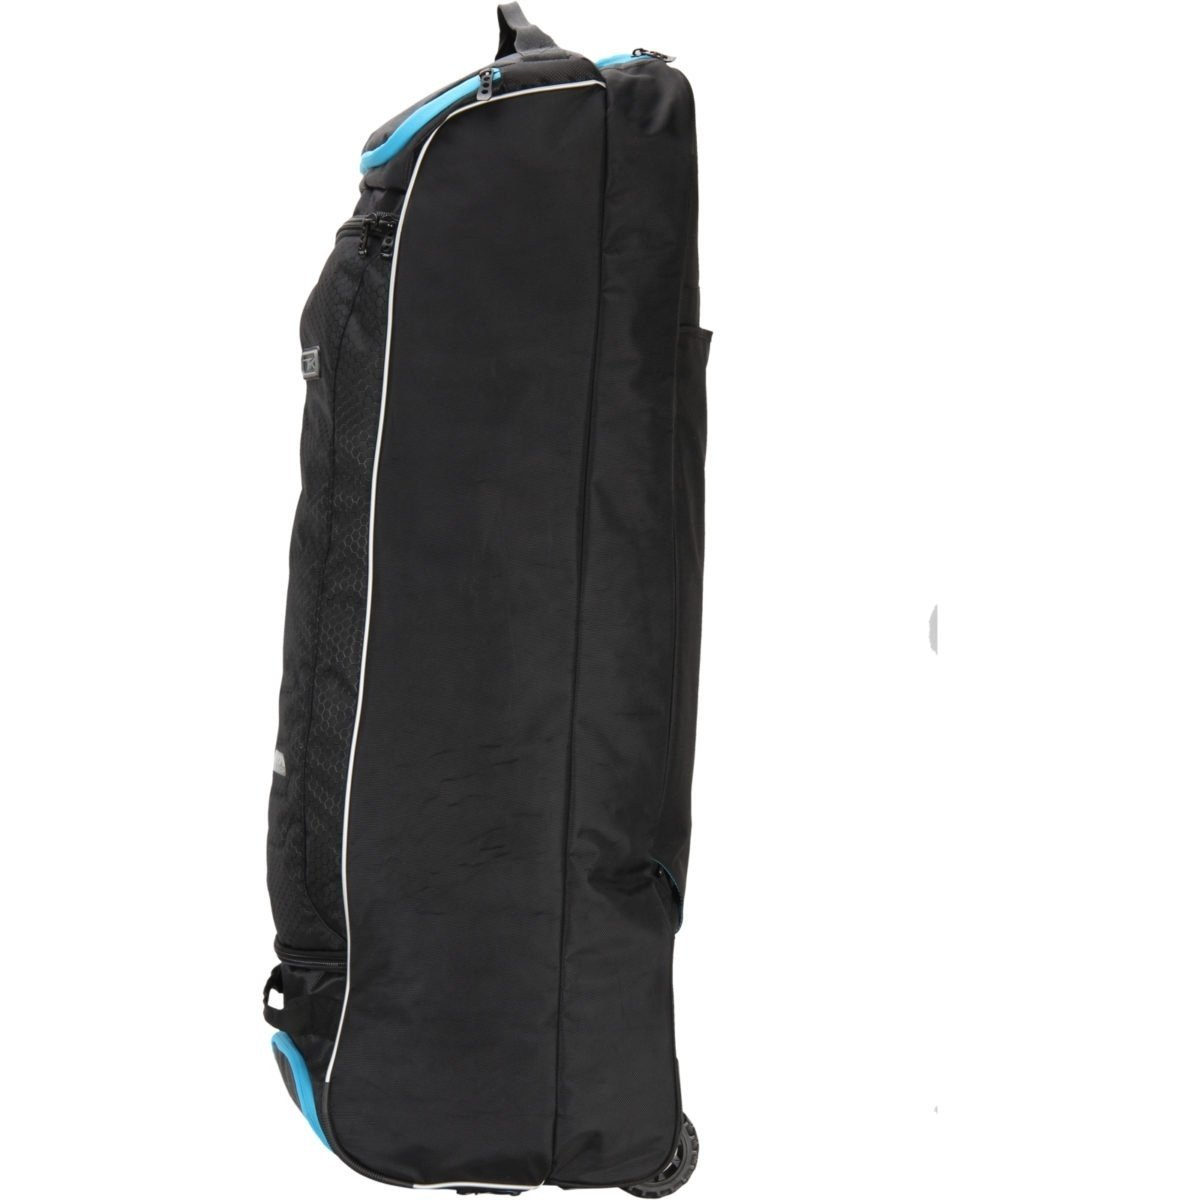 2017/18 TK LSX 1.1 Stick and Kit Bag